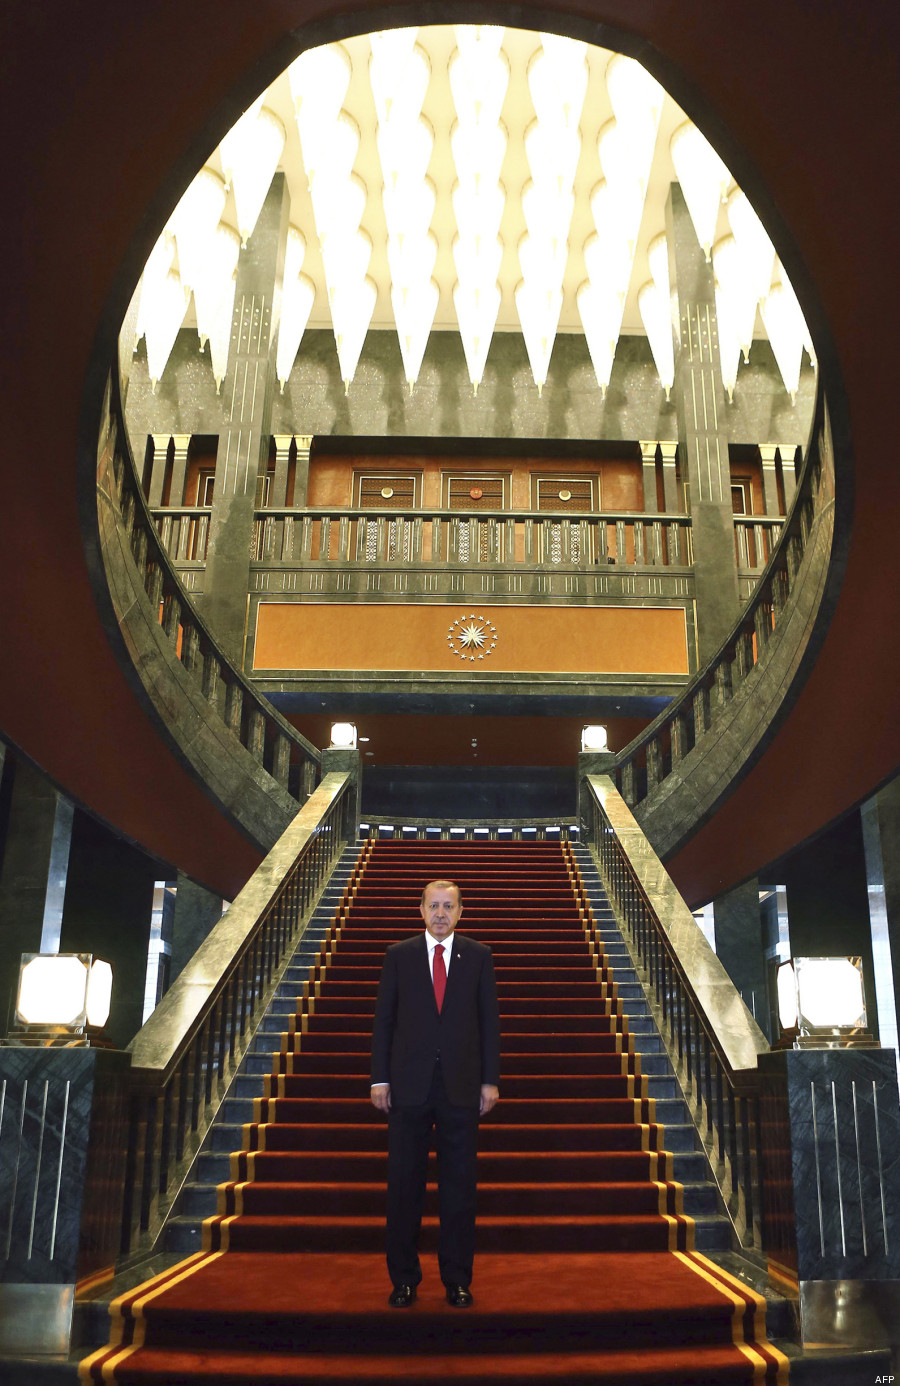 Turkish President Recep Tayyip Erdogan poses inside the new Ak Saray presidential palace (White Palace) on the outskirts of Ankara on October 29, 2014 before hosting a reception marking Turkey's annual republic day which celebrates the foundation of modern Turkey in 1923. Erdogan unveiled his new presidential palace on the outskirts of Ankara, denounced by ecologists as an environmental blight and by the opposition as new evidence of his autocratic tendencies.  An immense project built at a reported cost of $350 million, it has an area of 200,000 square metres, 1,000 rooms and architecture that is supposed to marry modernism and the traditions of the mediaeval Seljuk dynasty. AFP PHOTO/ADEM ALTAN